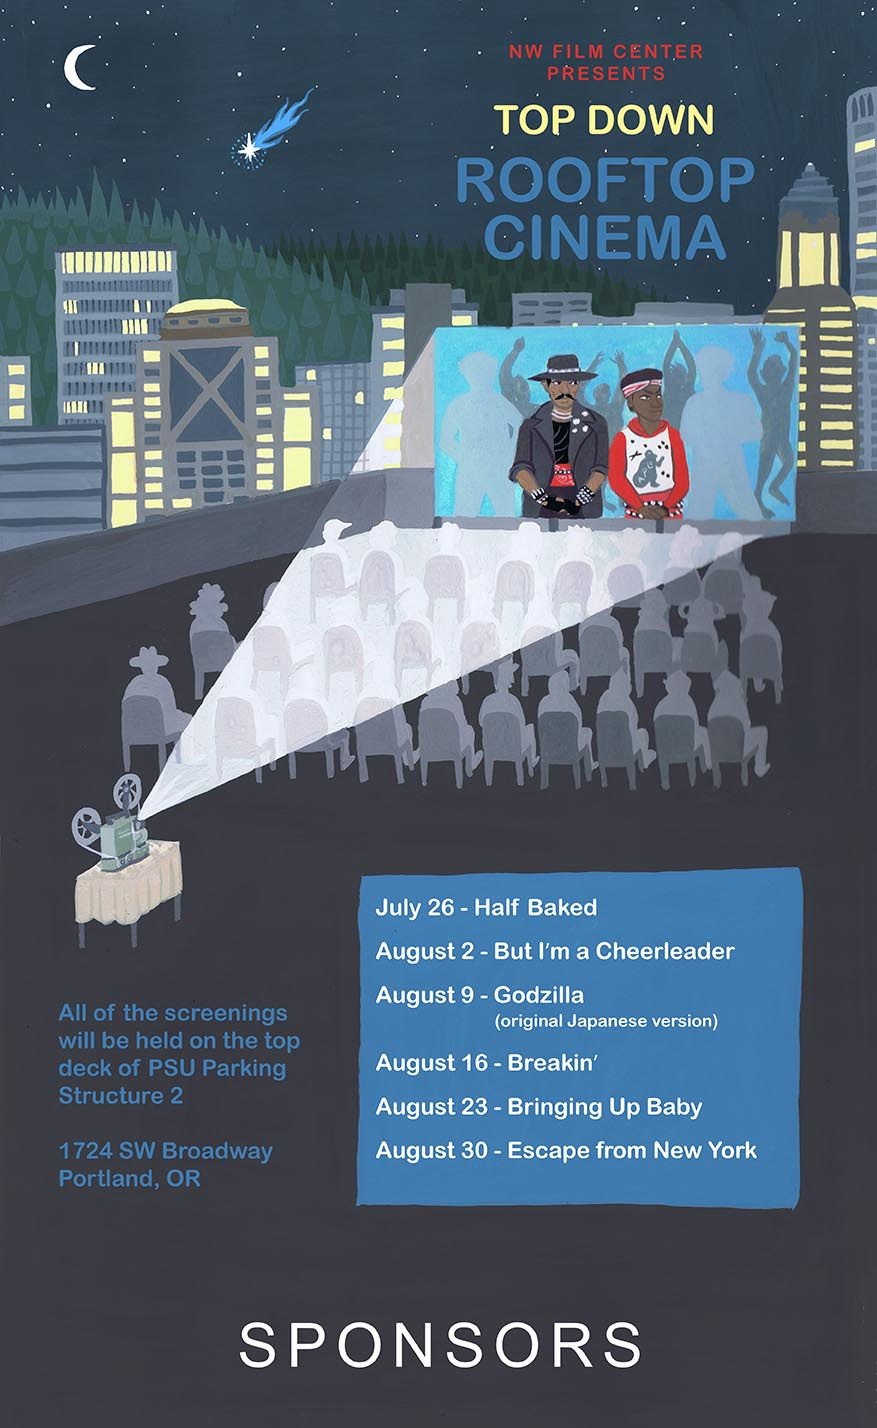 Northwest Film Center Rooftop Screenings